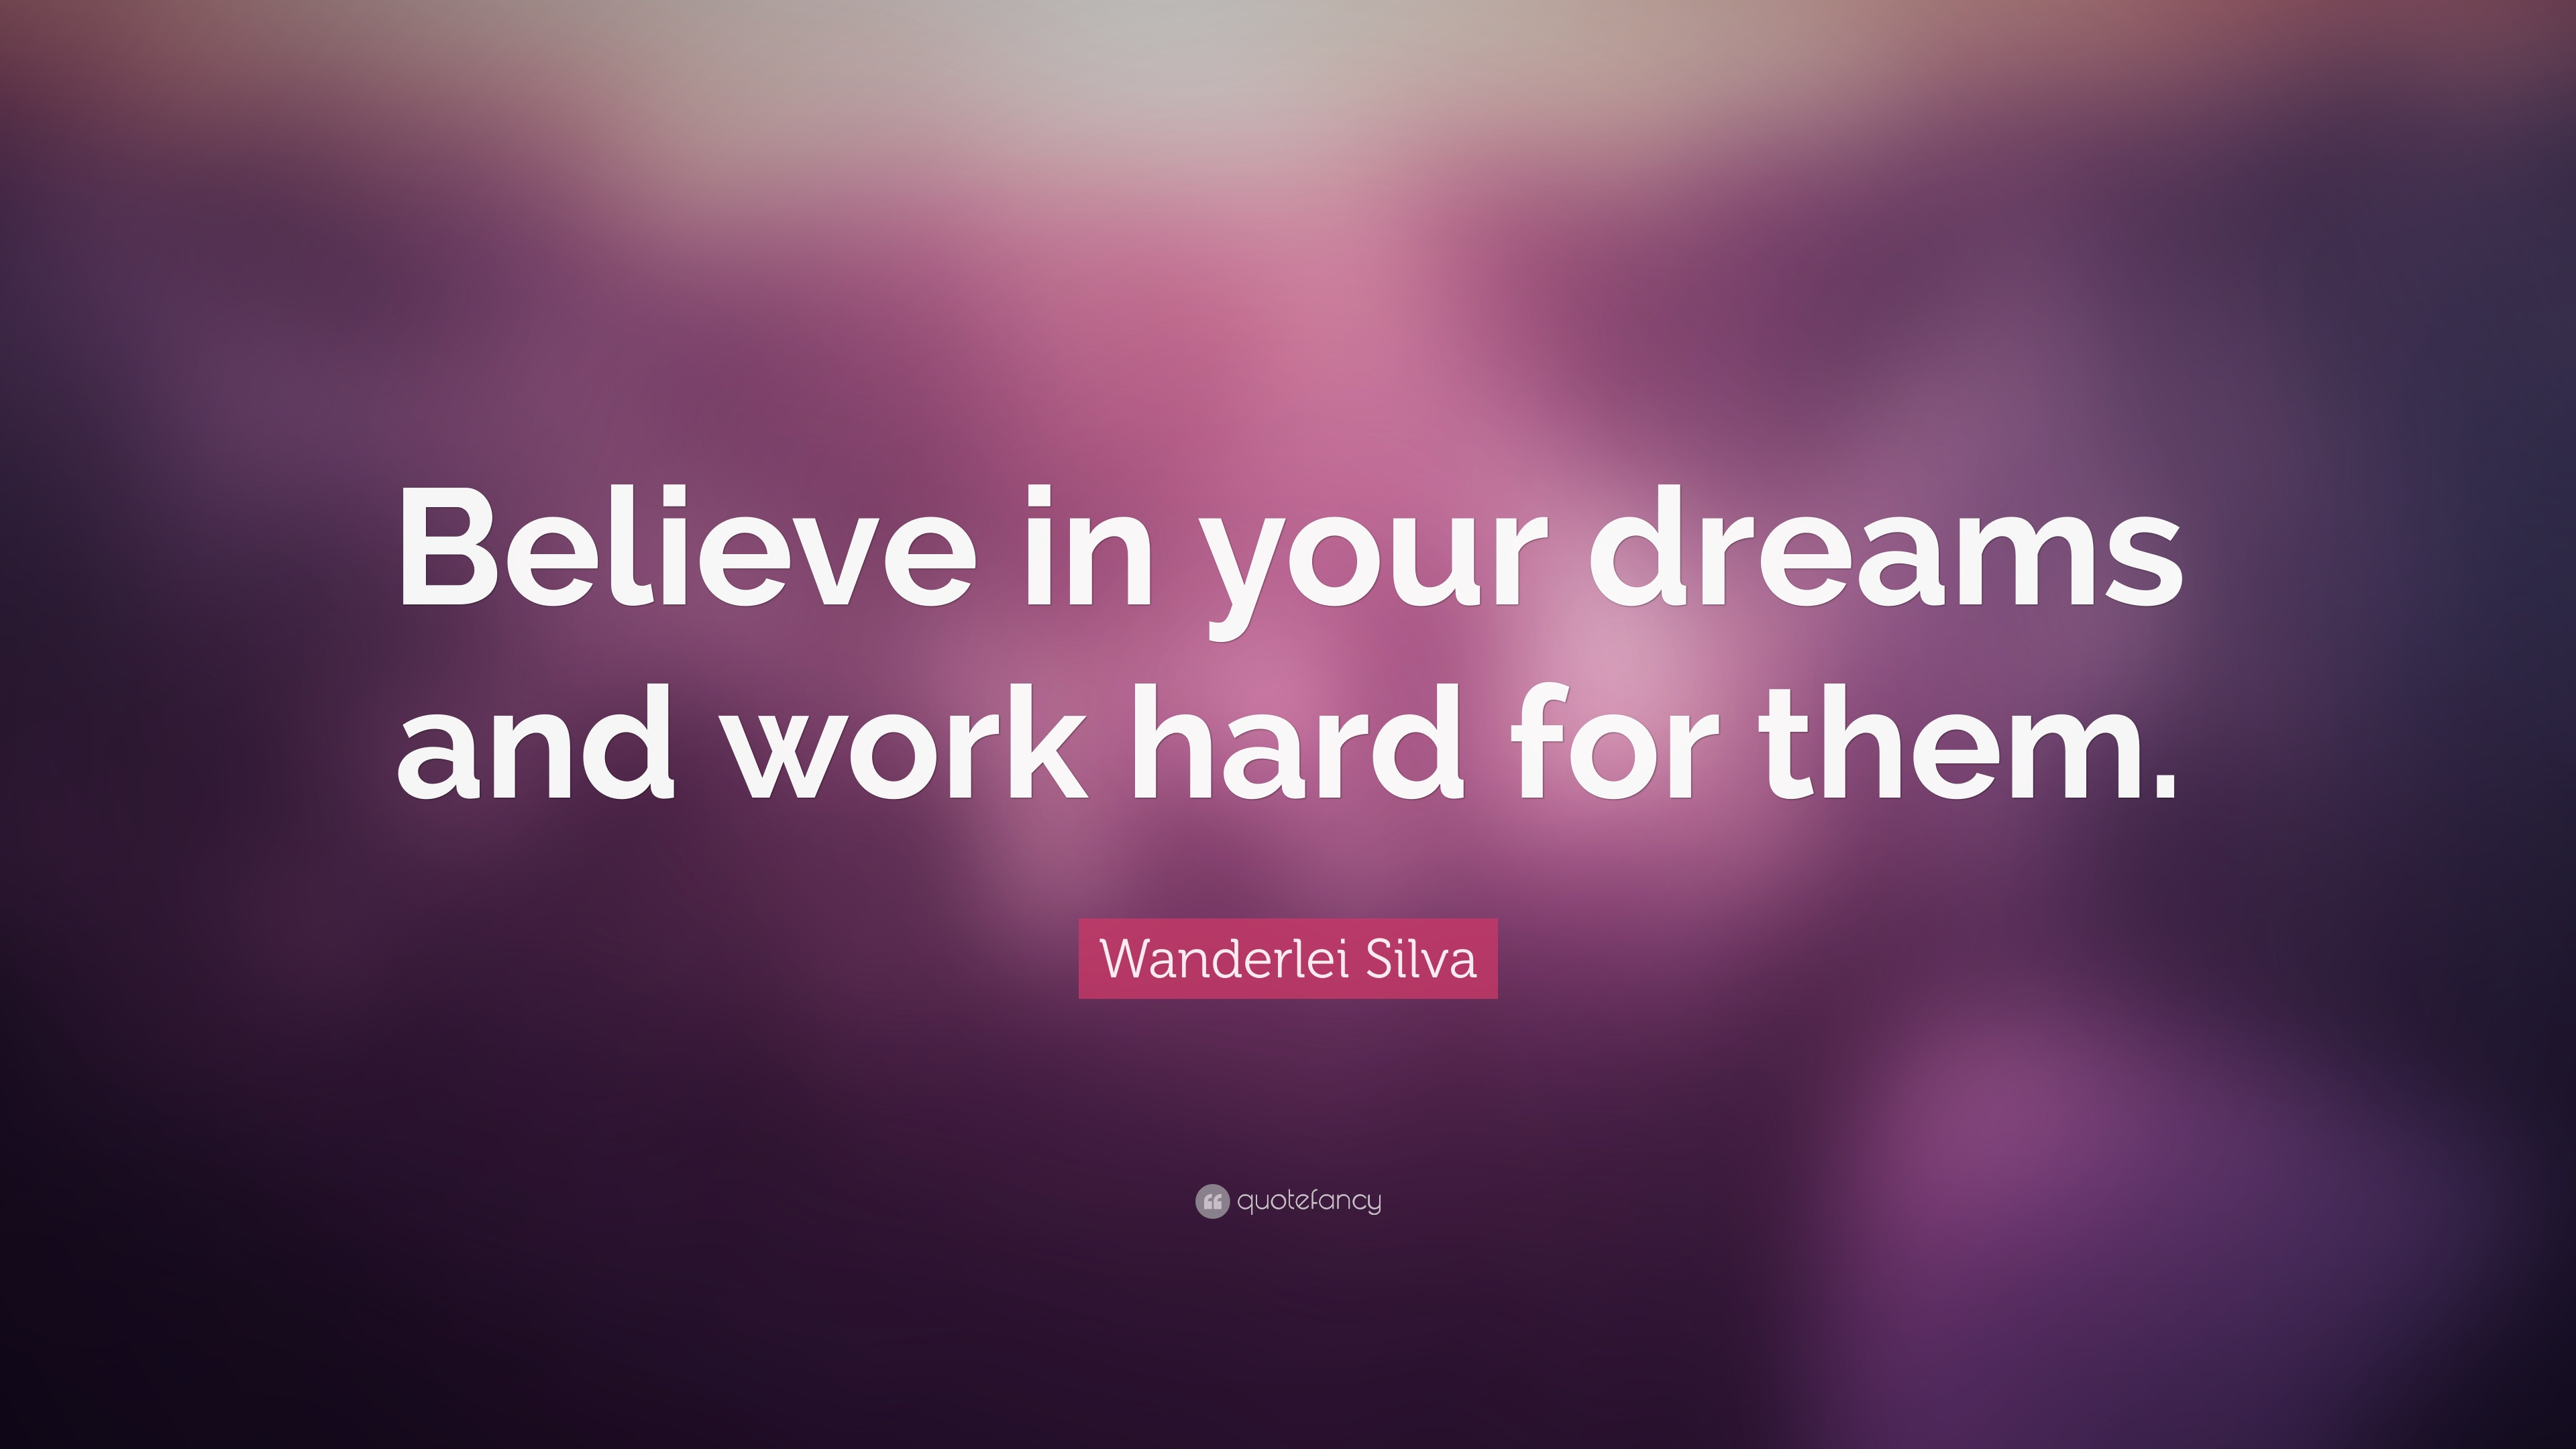 9 Wallpapers Wanderlei Silva Quote Believe In Your Dreams